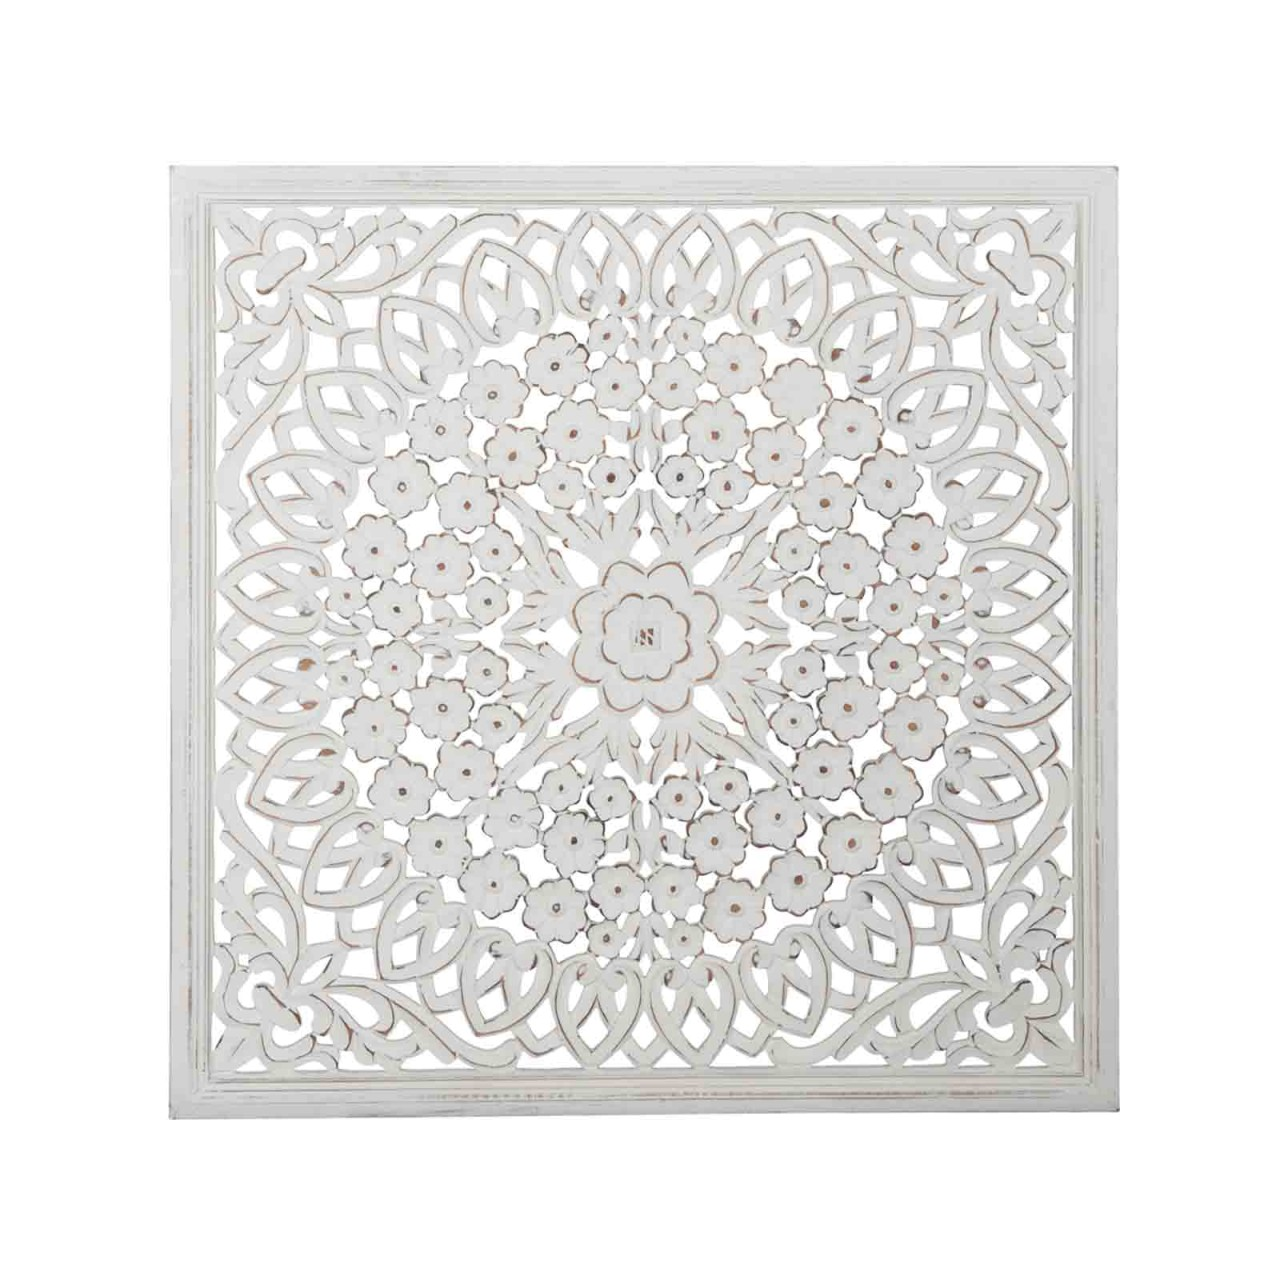 Holzbild Ornament MDF 90x90cm weiss